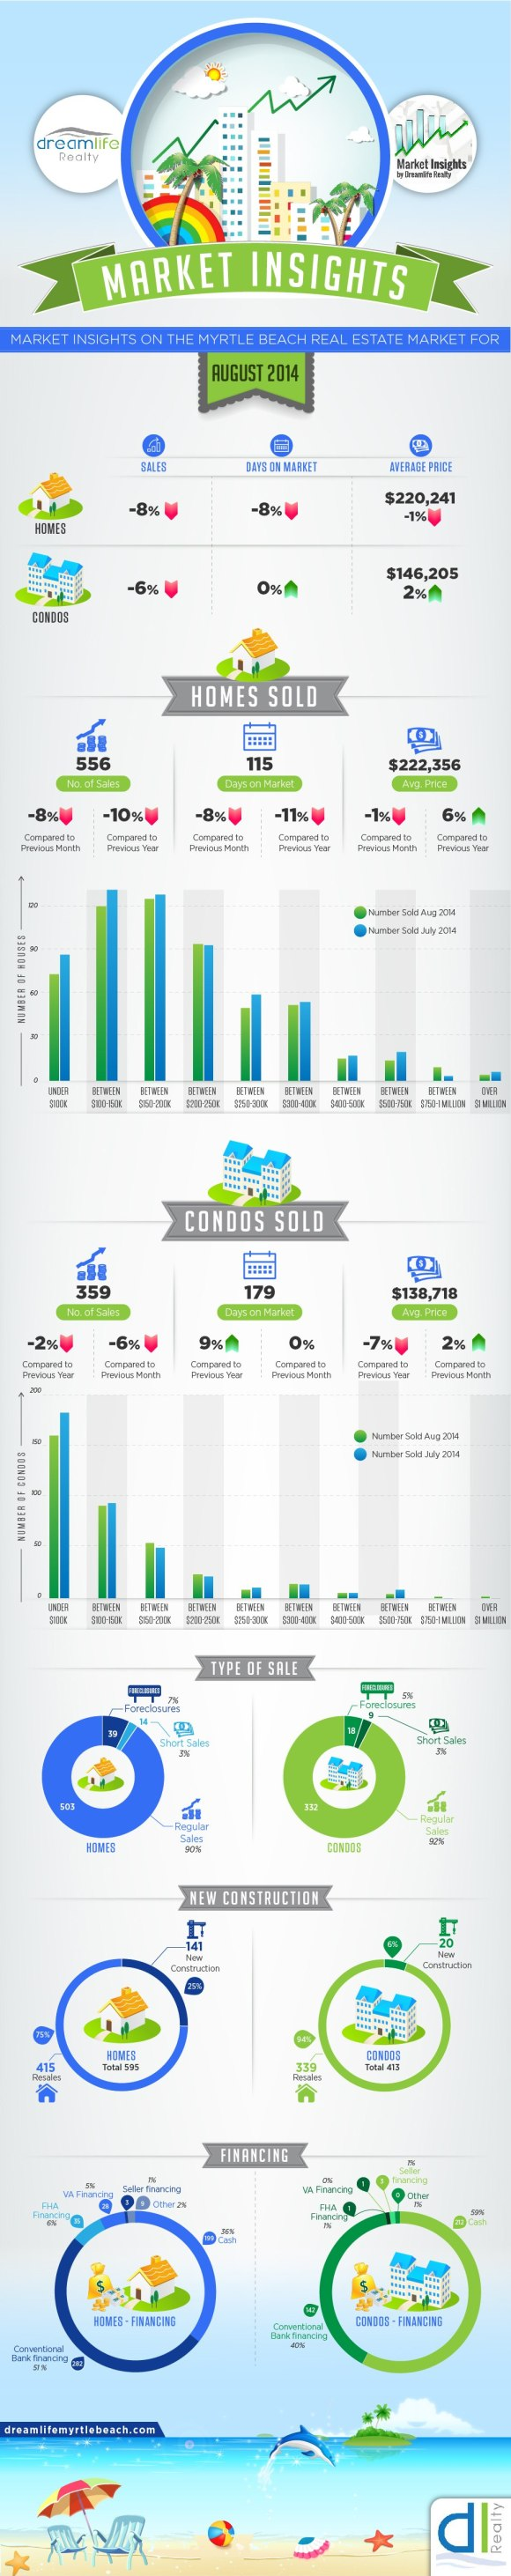 Myrtle Beach Real Estate Market Update Infographic - August 2014